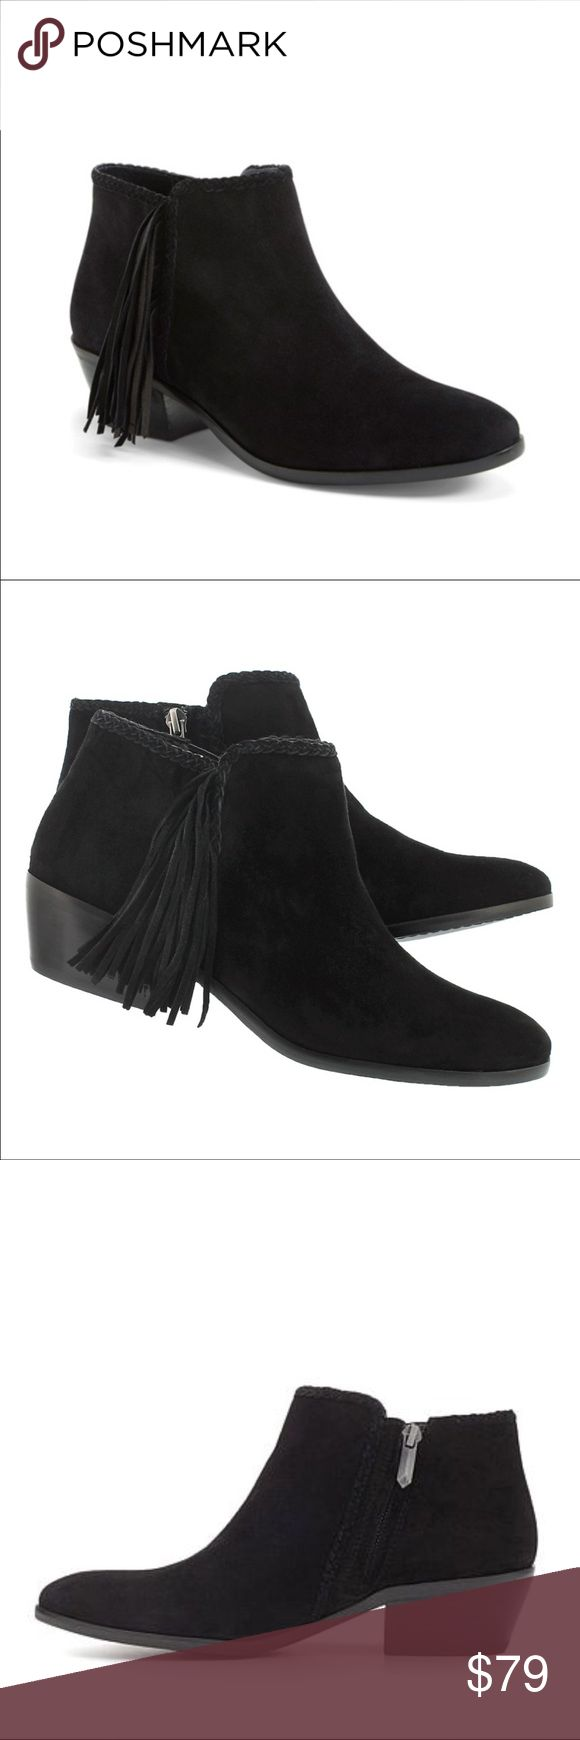 """Sam Edelman Paige Black Fringe Ankle Boho Booties Sam Edelman """"Paige"""" Leather Suede Bootie Boots with Fringe Size 7.5. Black. Retail price is $170. Still sold on HSN.  Beautiful braiding and fun fringe combine to give a Bohemian update to the basic boot s"""